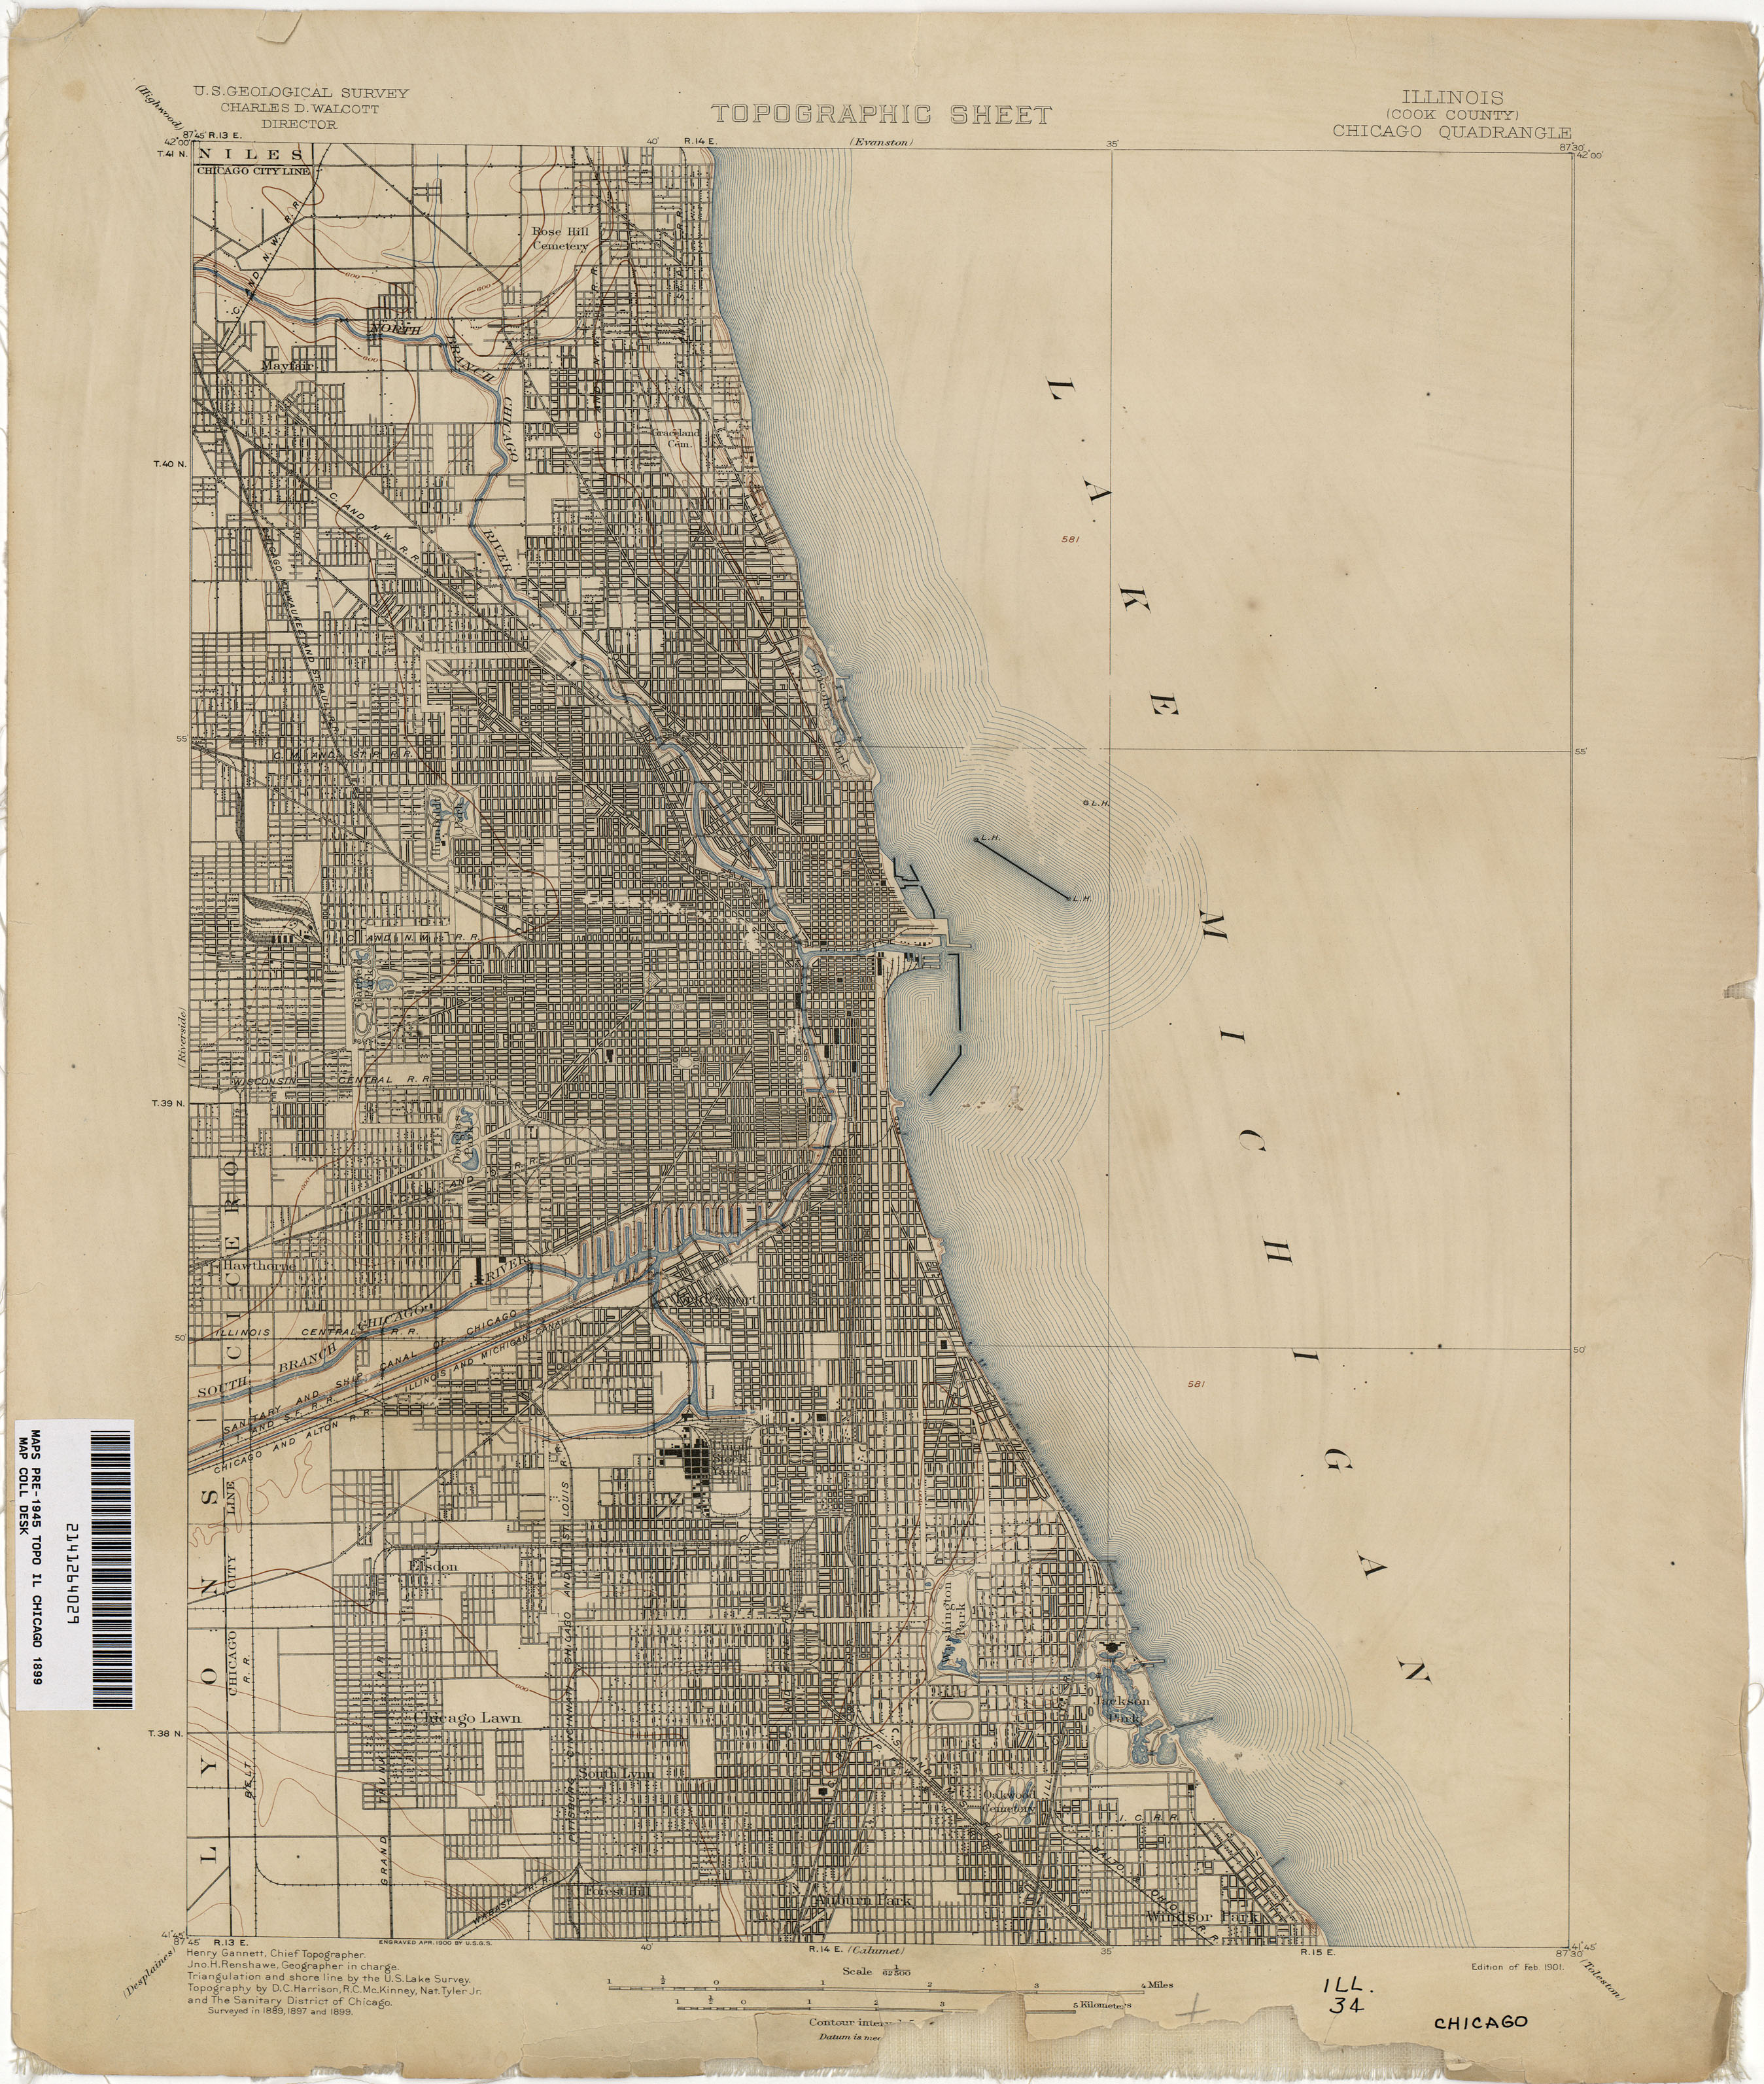 Topographic Map Chicago Illinois Historical Topographic Maps   Perry Castañeda Map